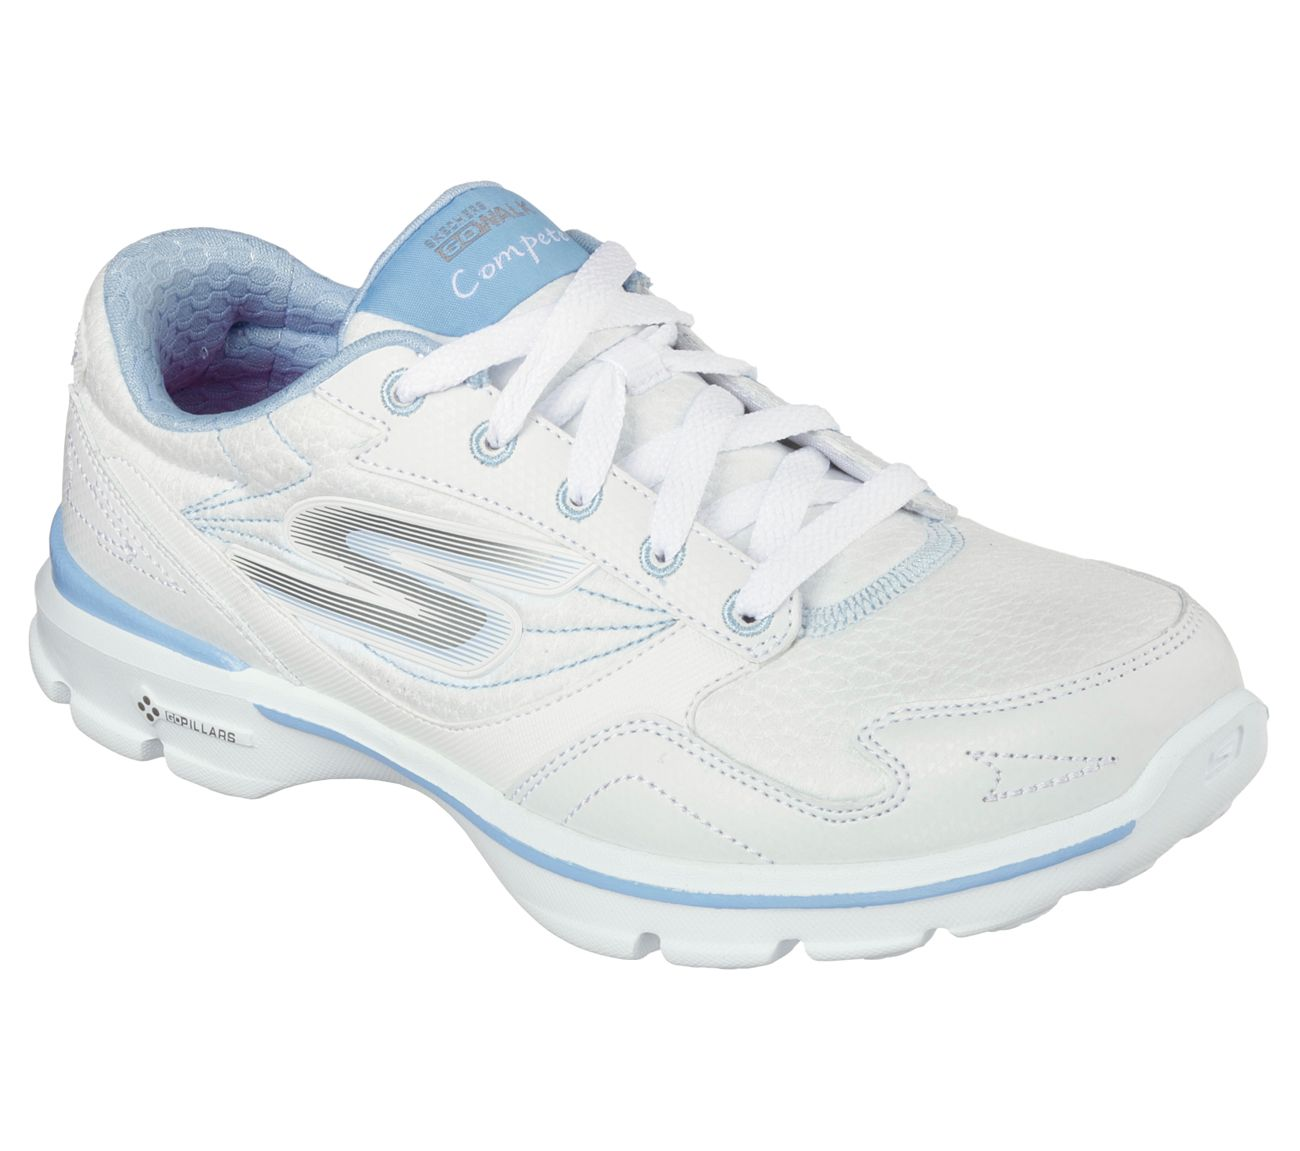 skechers goga mat insoles | Working At Skechers